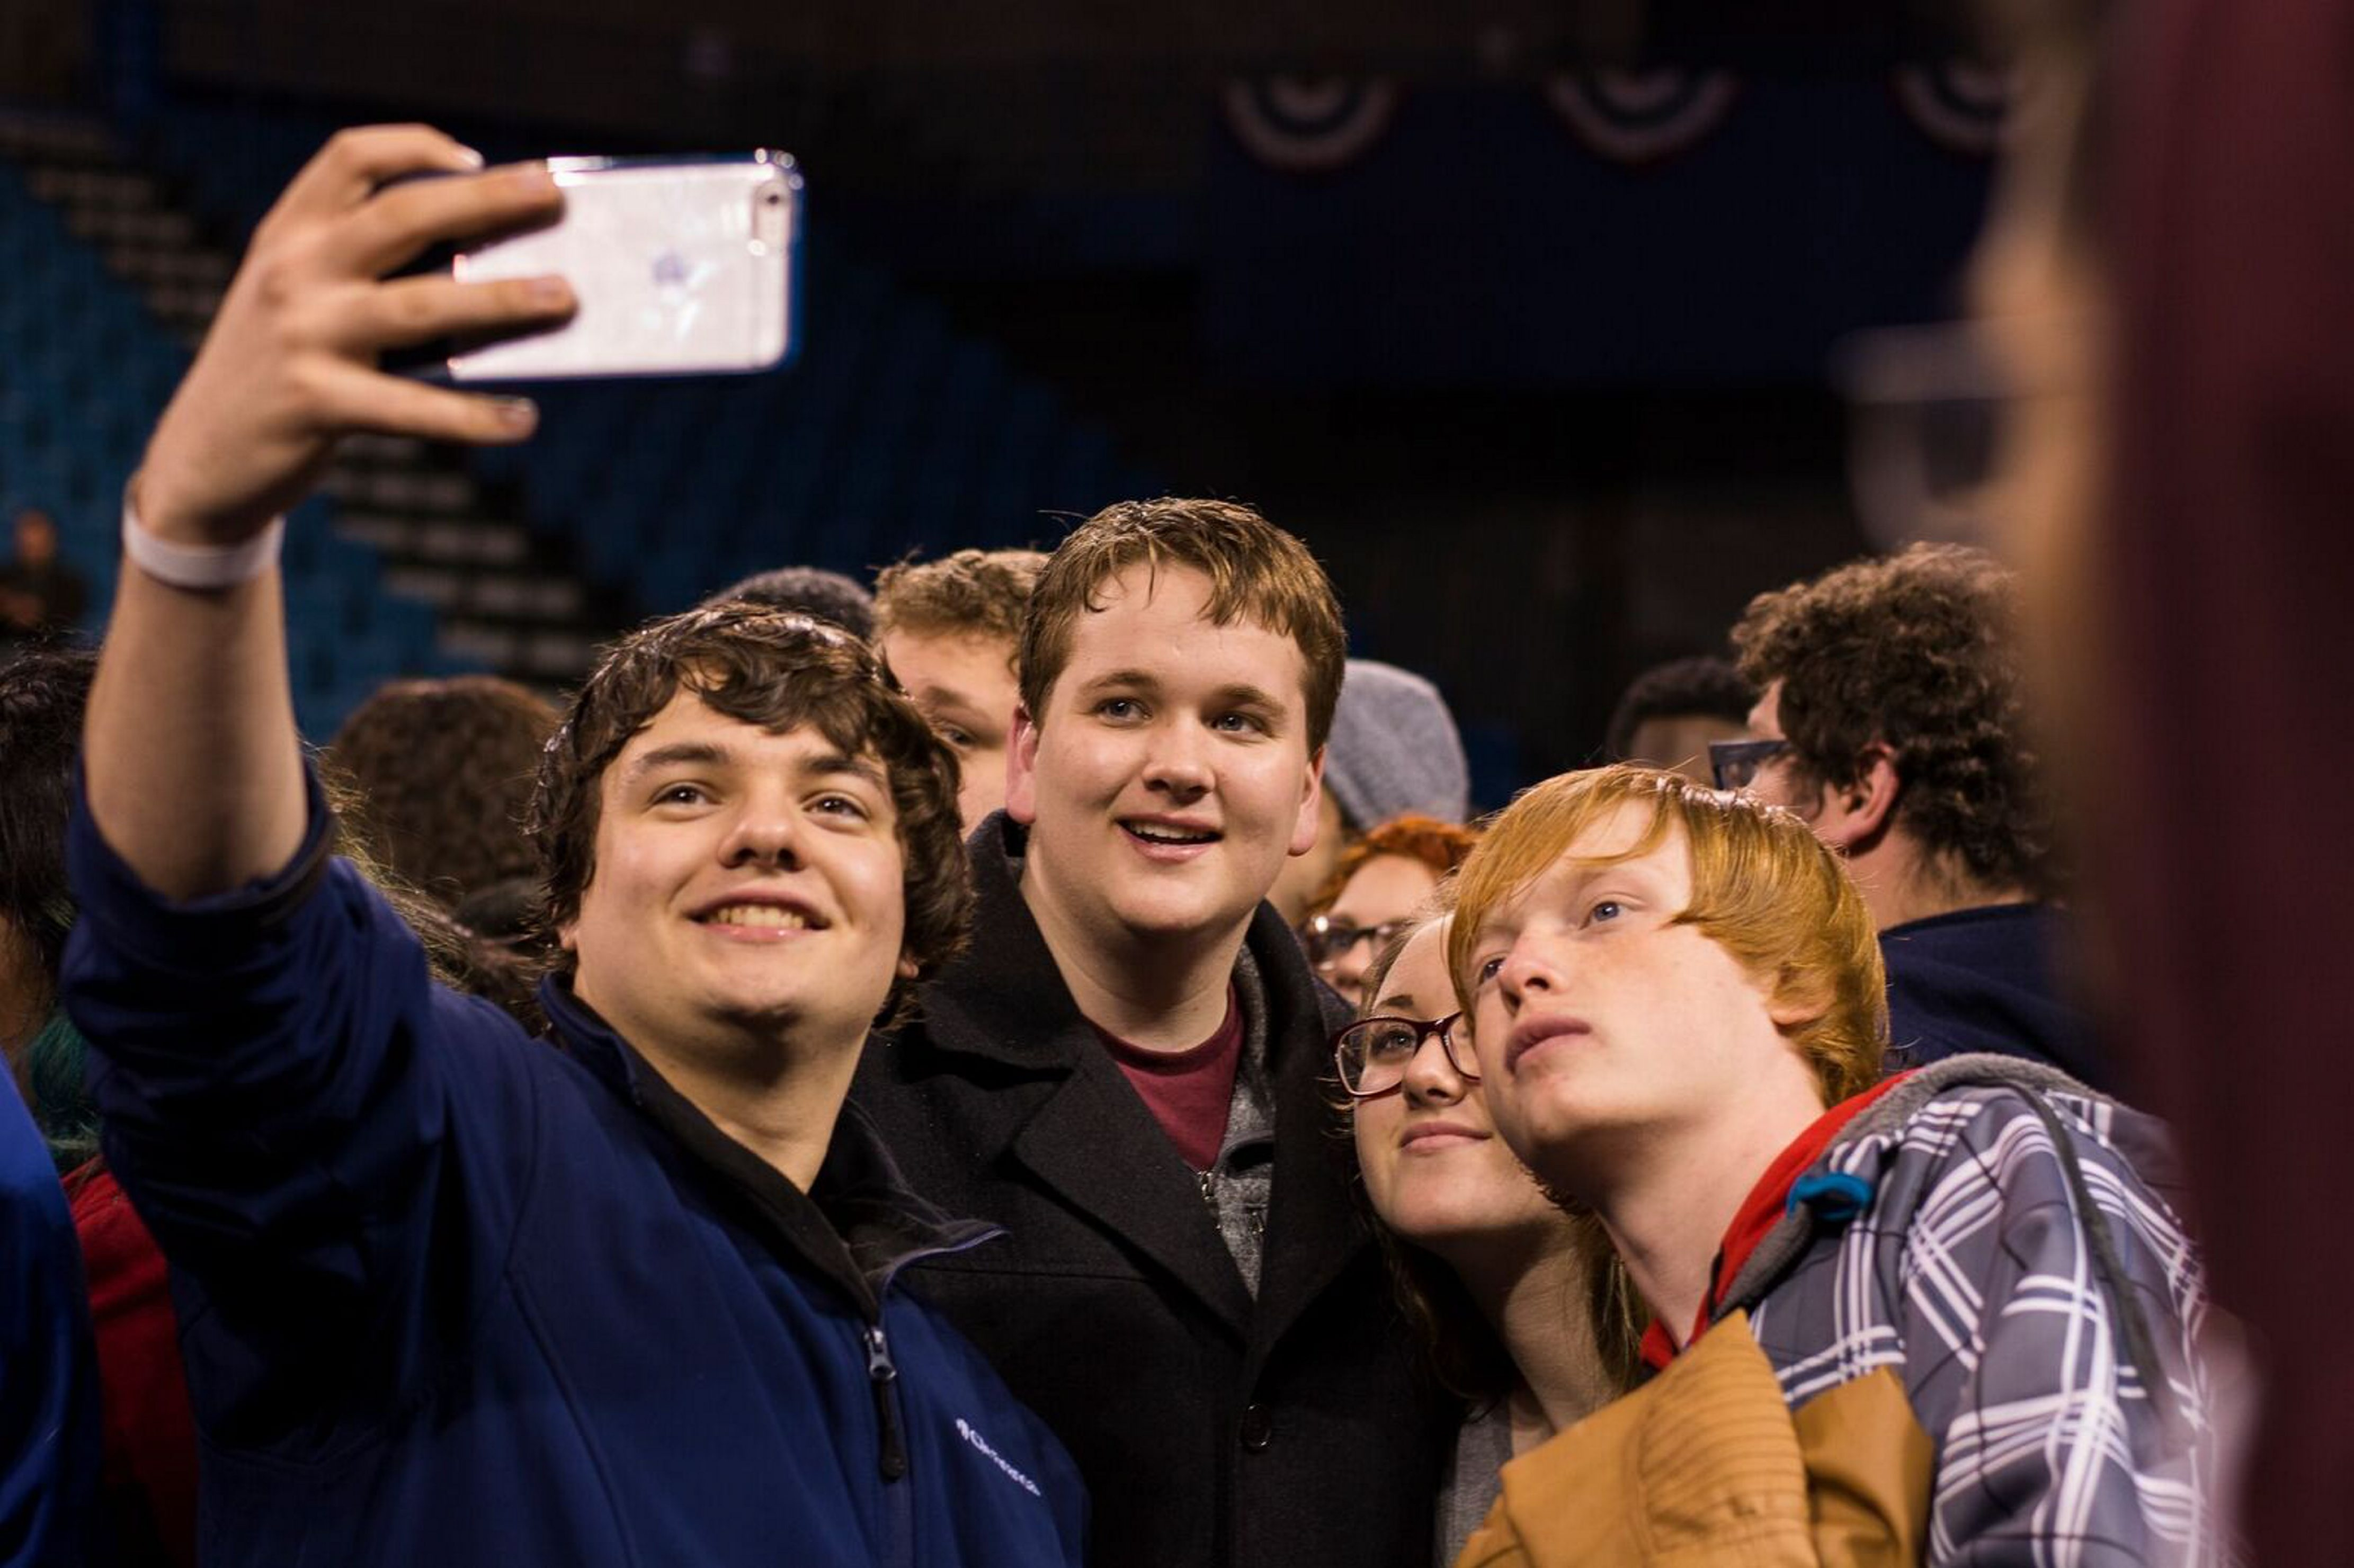 Can young voters make a difference?